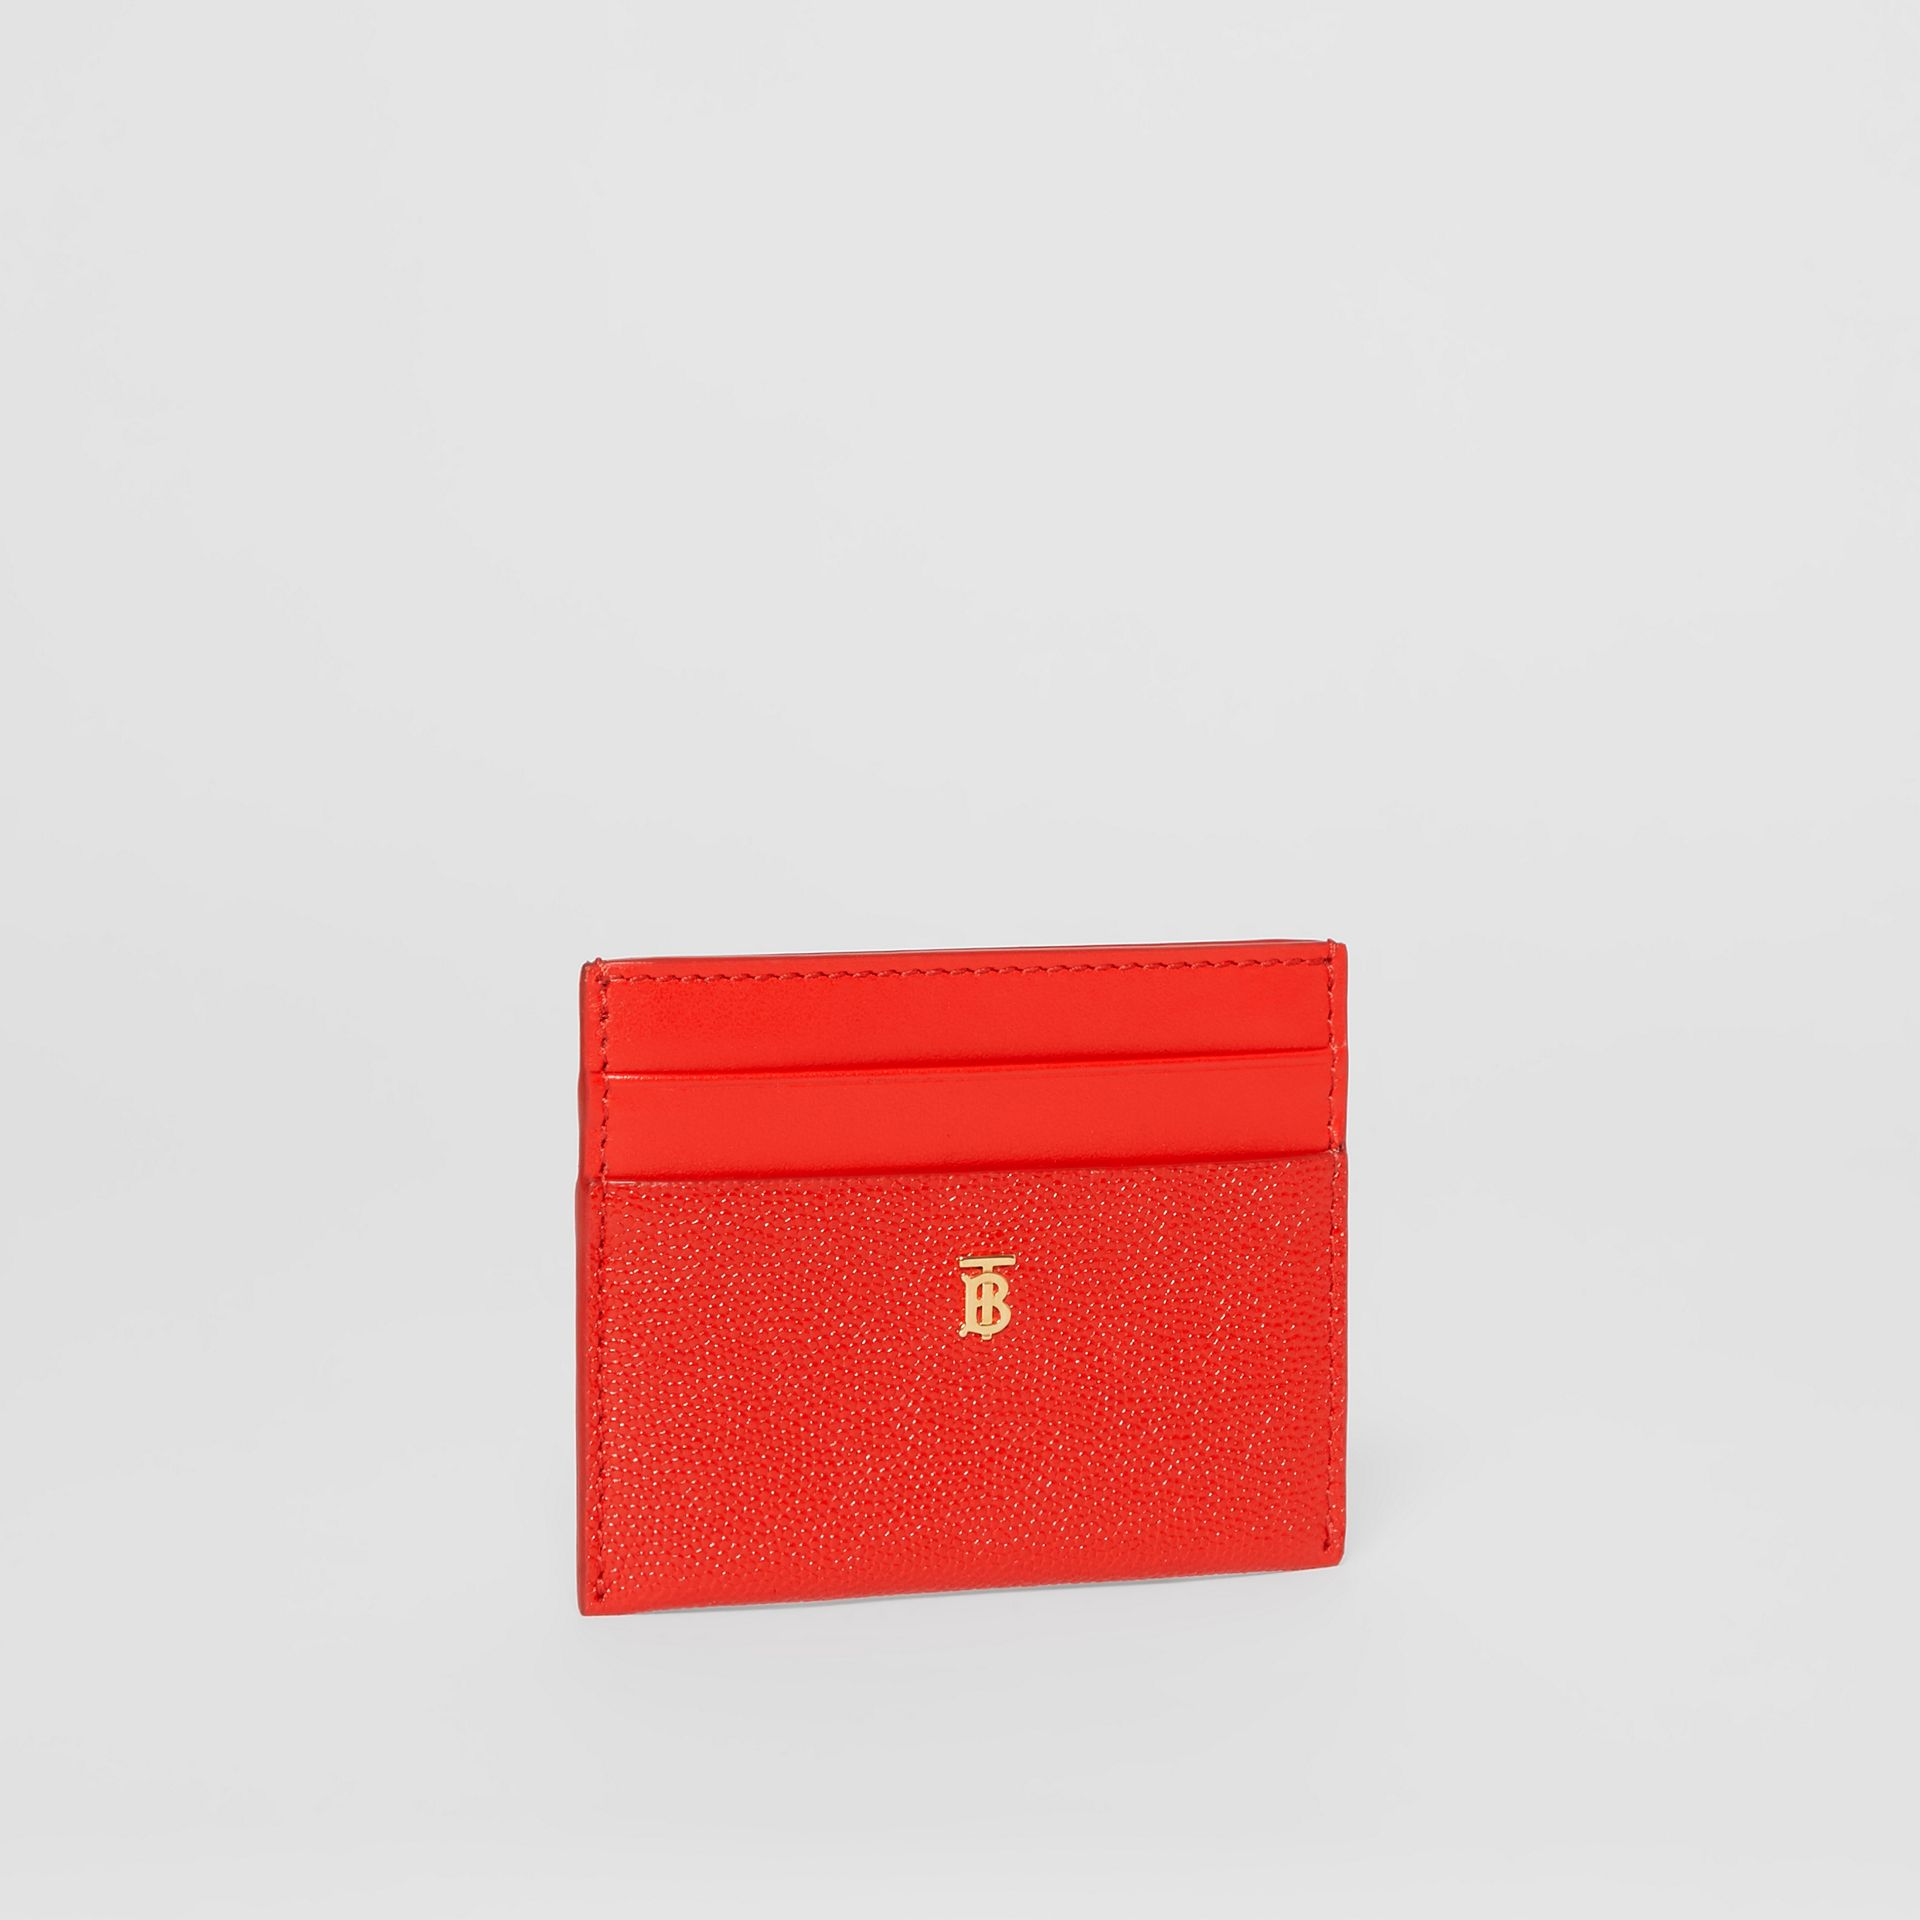 Monogram Motif Leather Card Case in Bright Red - Women | Burberry Hong Kong S.A.R - gallery image 3